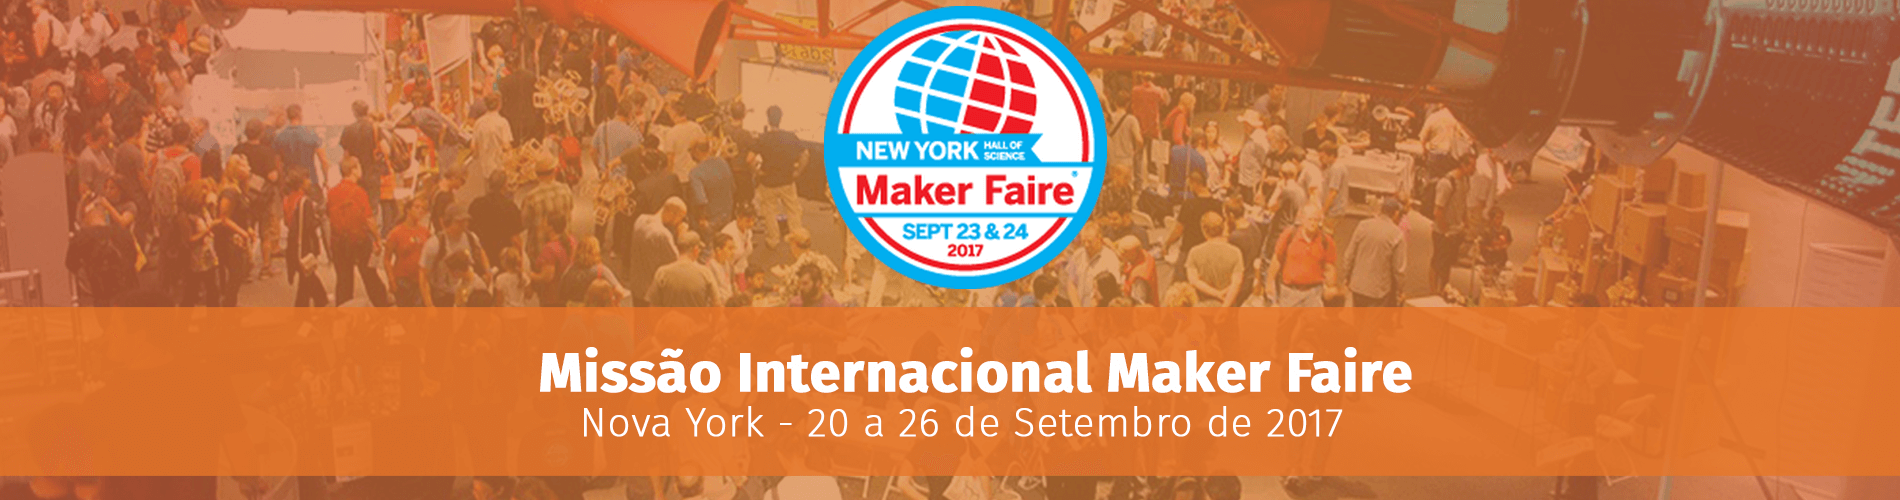 instituto-mestre-gp-realiza-missao-internacional-para-maker-faire-ny